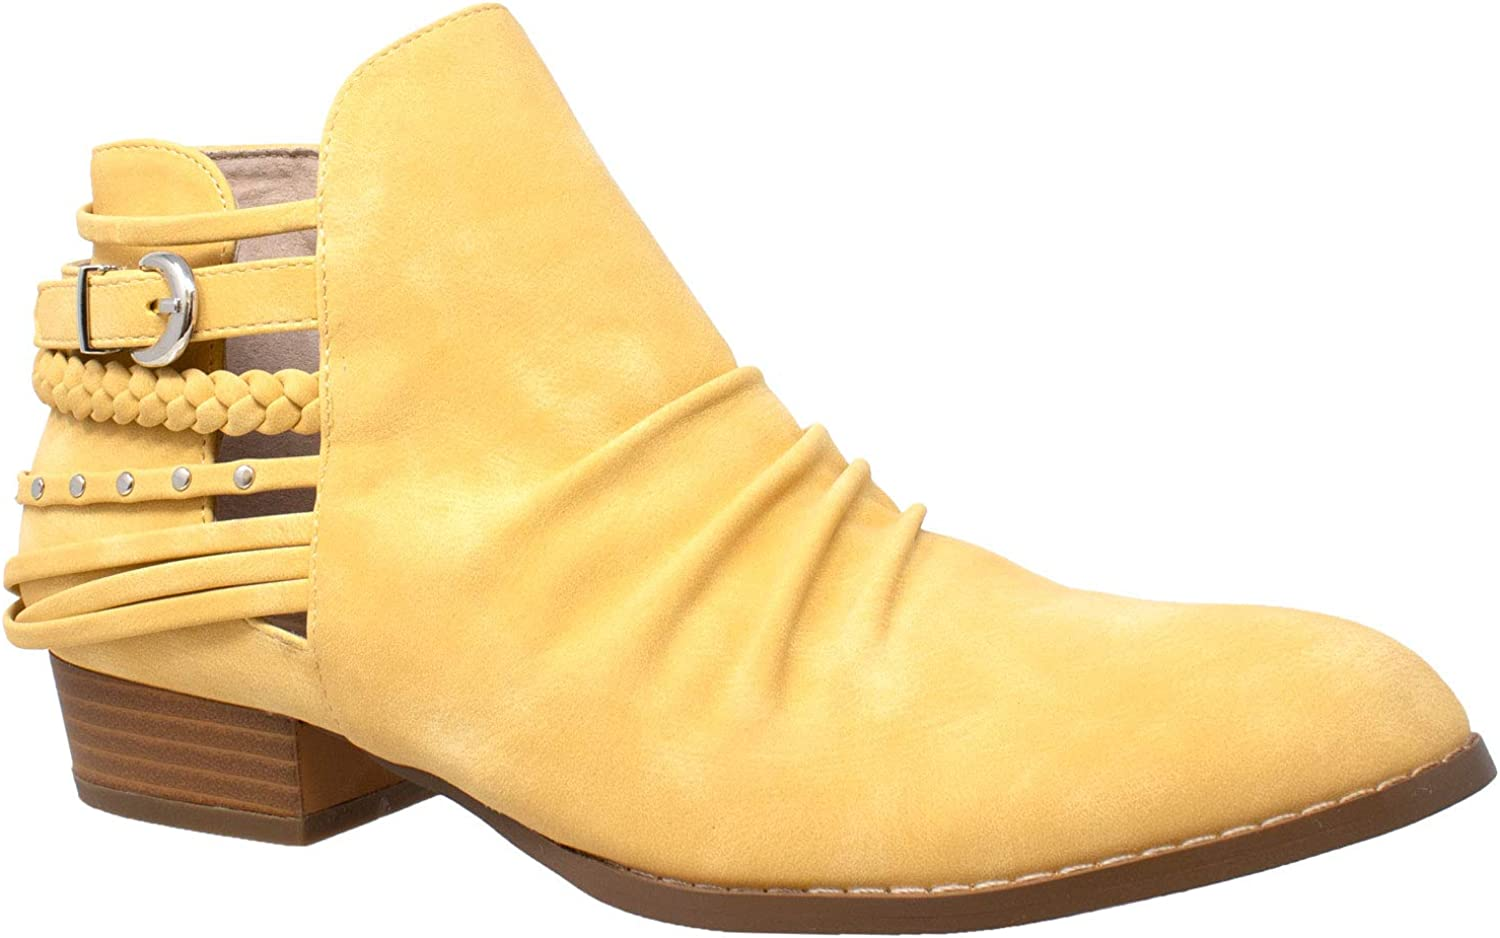 SOBEYO Womens Ankle Boots Western Quantity limited Strappy Charlotte Mall Bootie Heel Block Stud